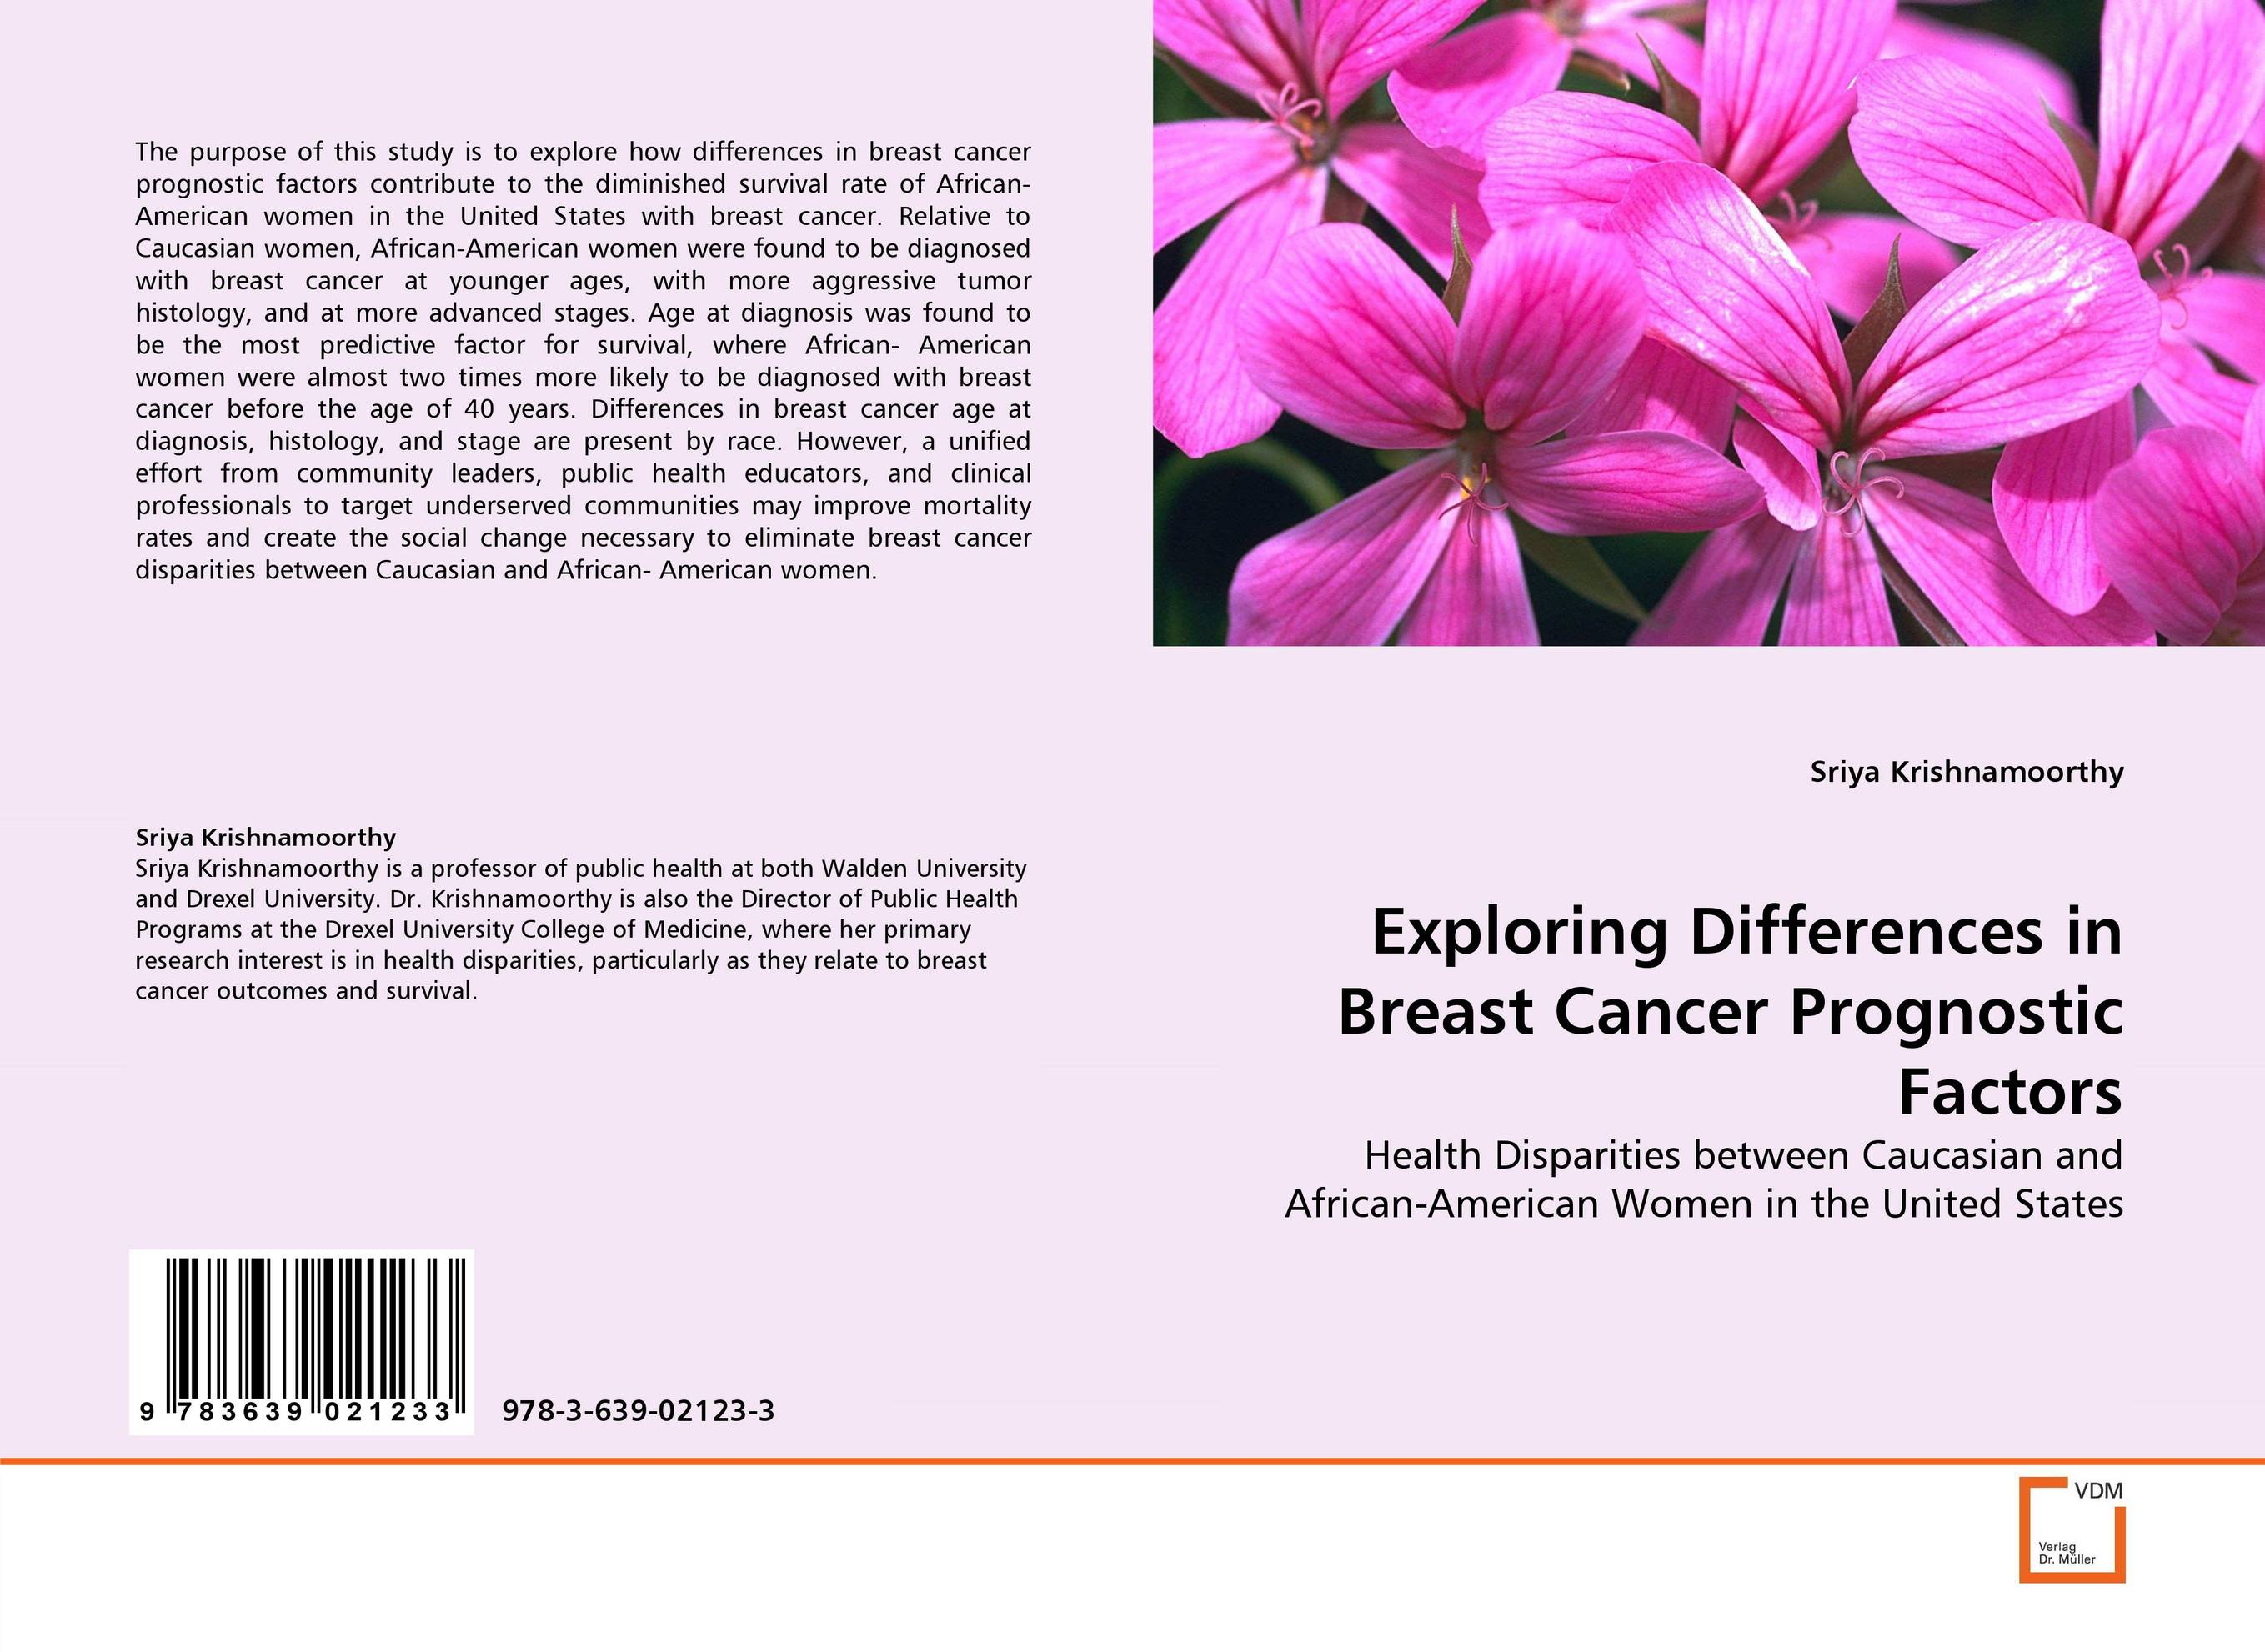 Exploring Differences in Breast Cancer Prognostic Factors prognostic markers and cancer